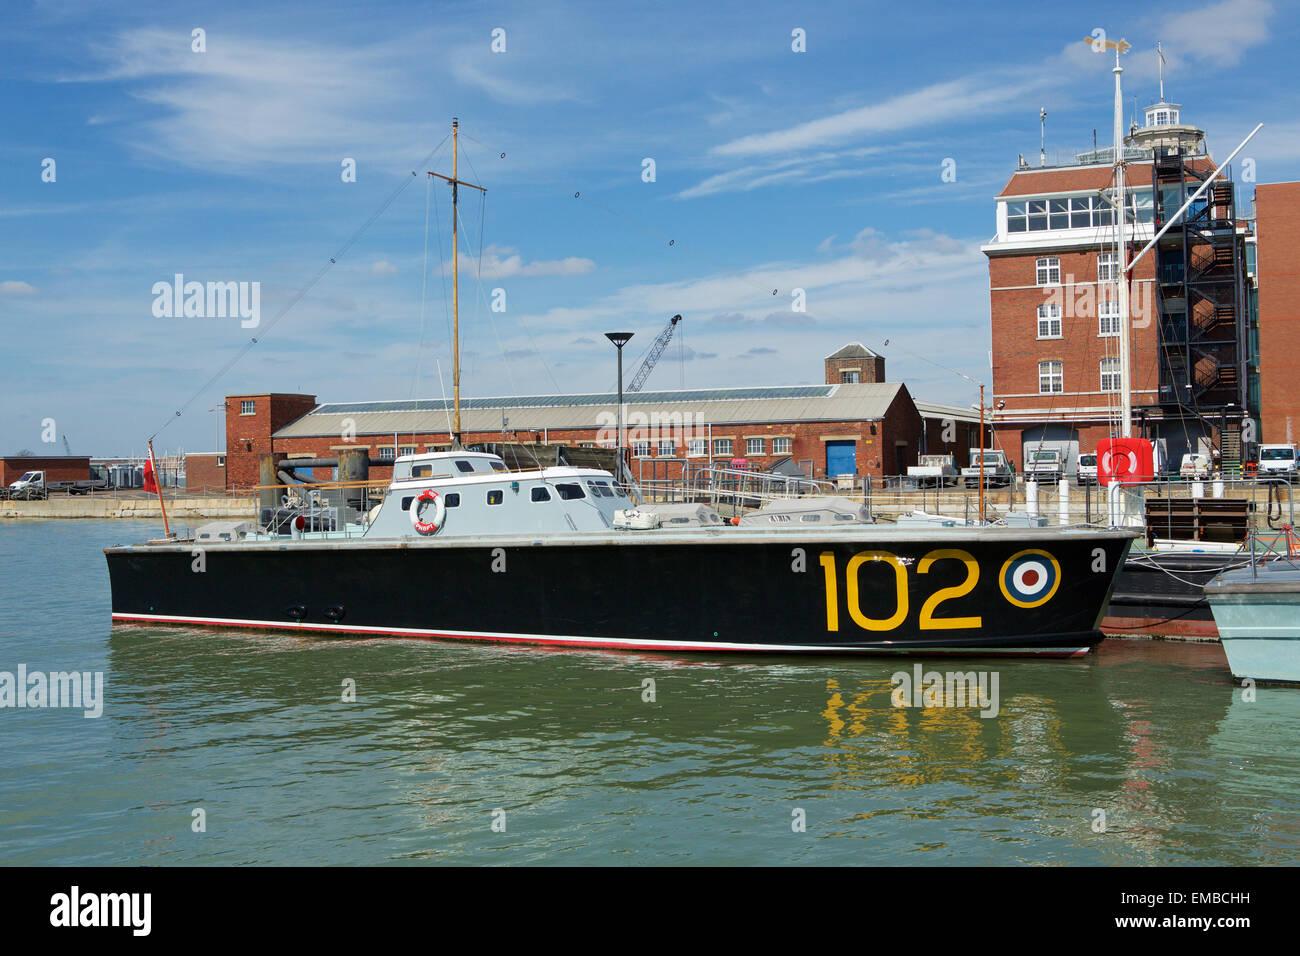 HSL 102 Motor launch in Portsmouth Dockyard. Vintage vessel which has seen service with the RAF and Royal Navy. - Stock Image